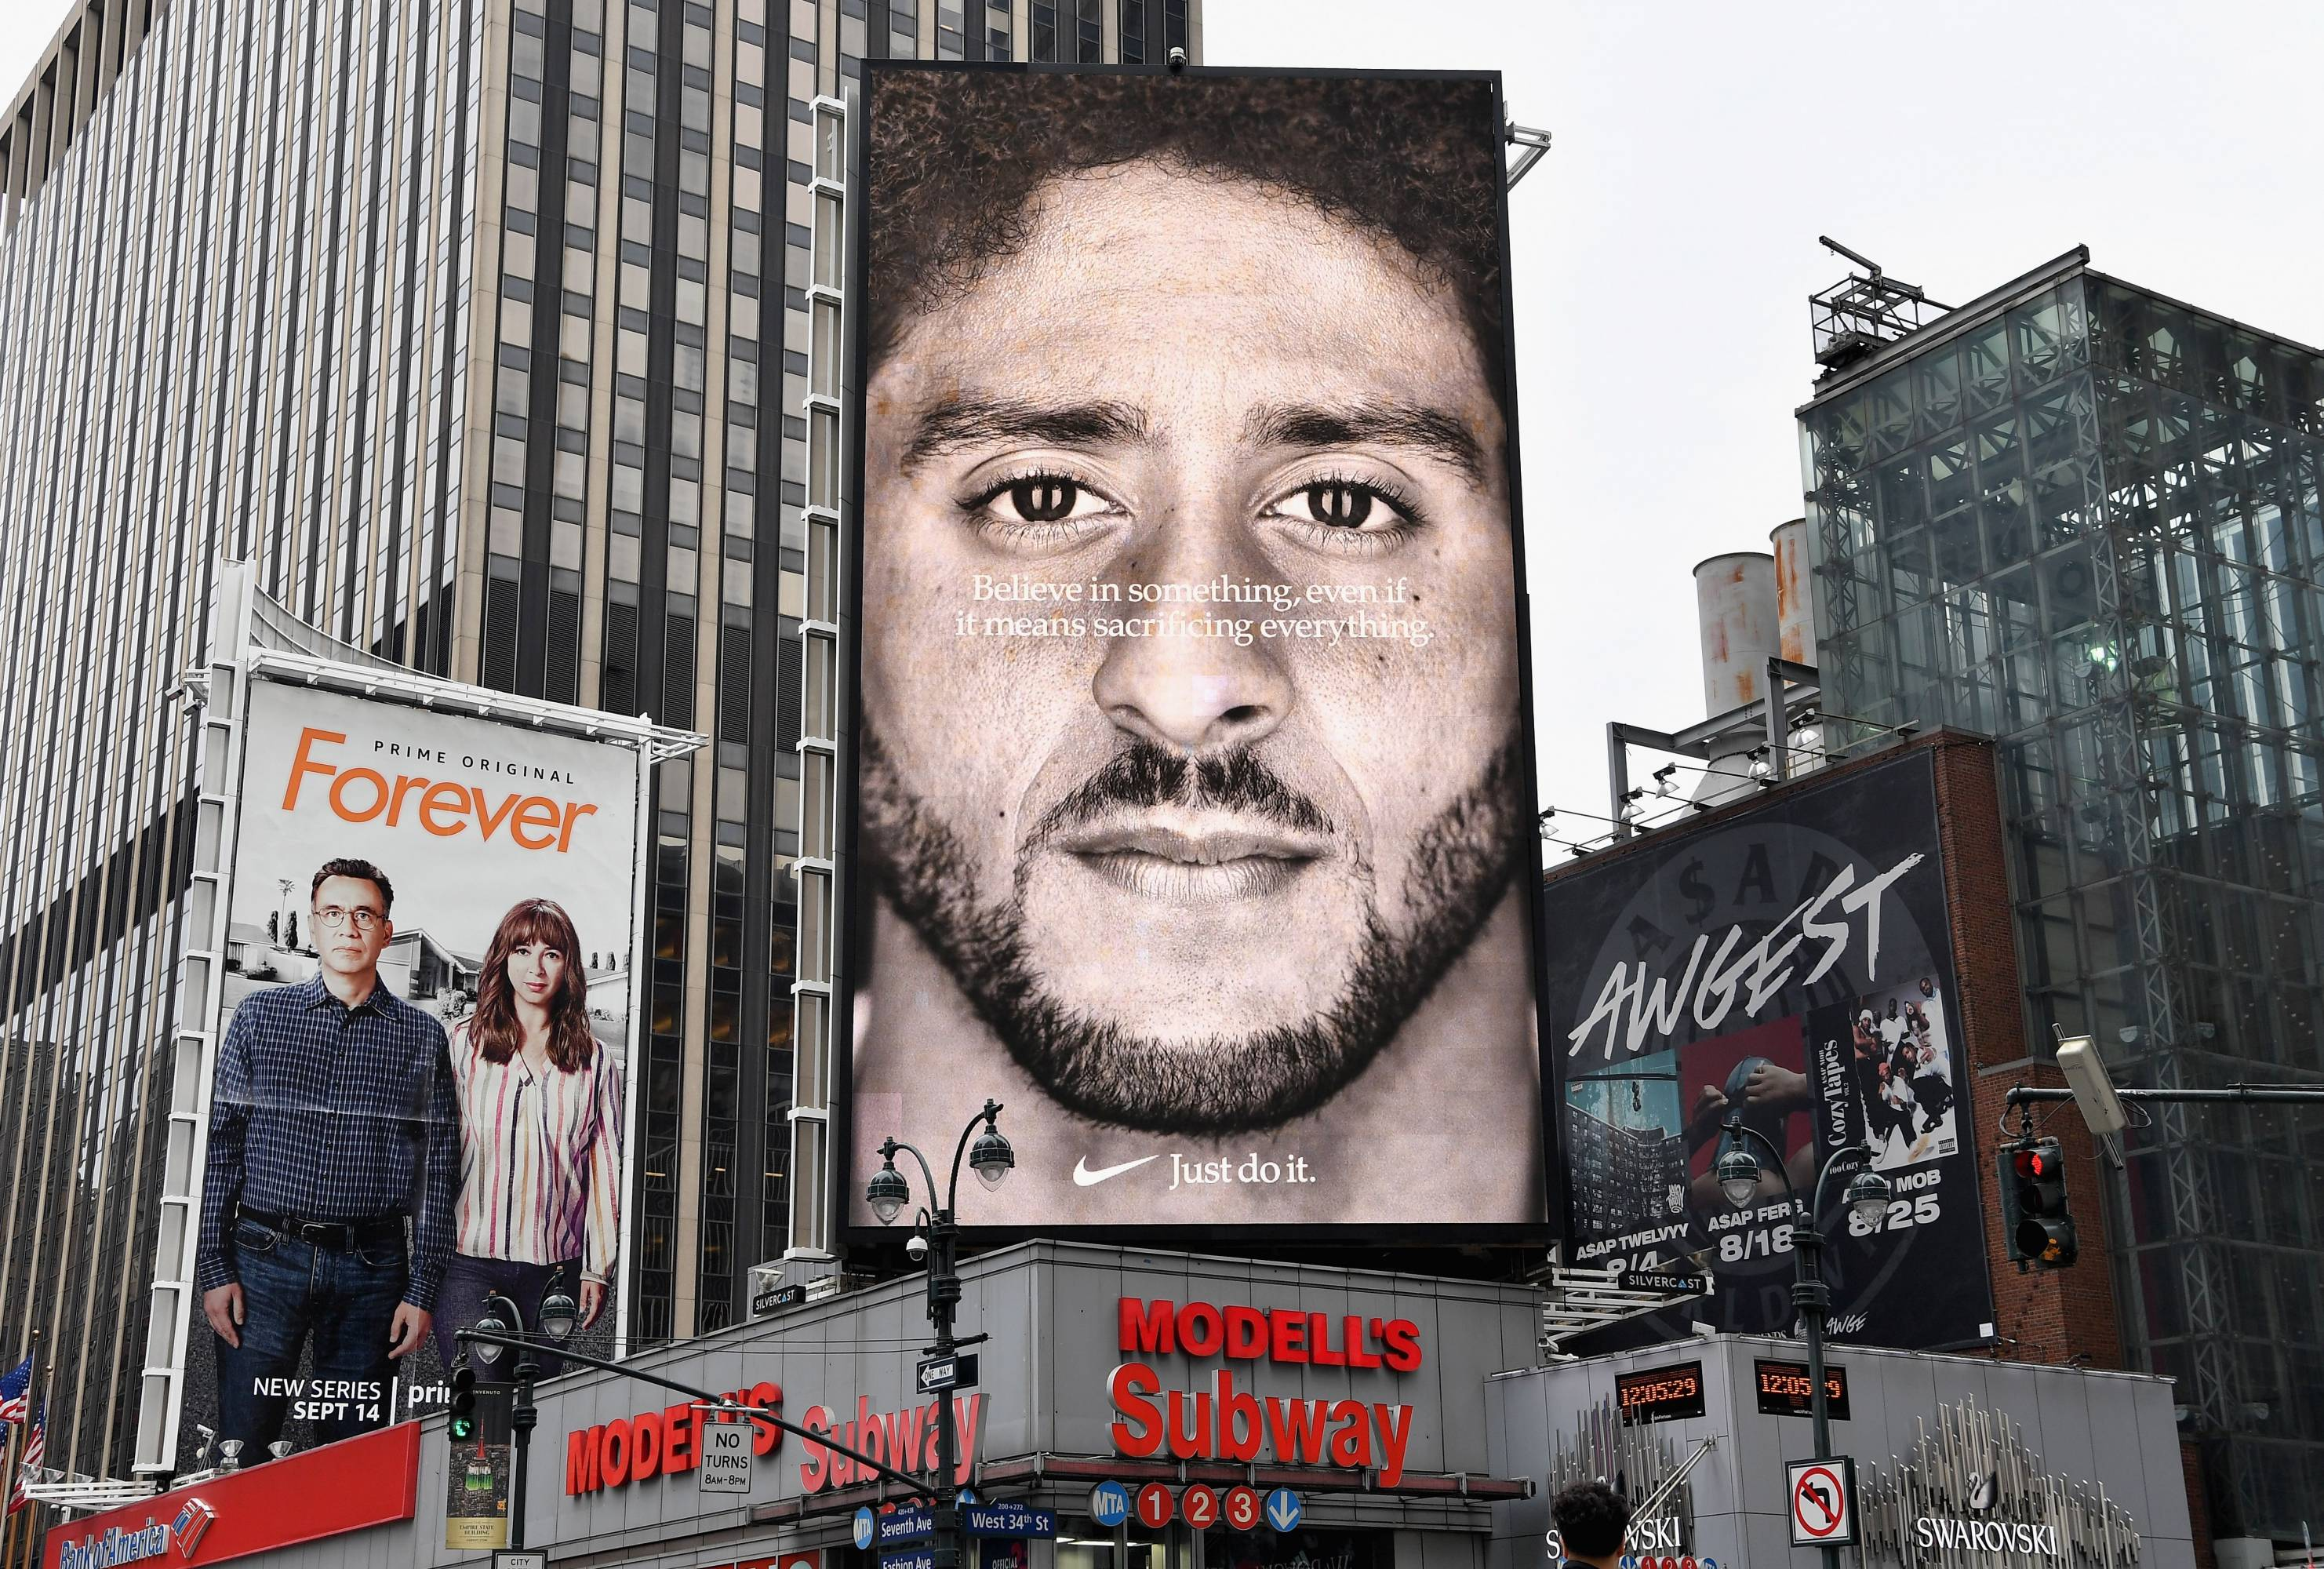 US-AMFOOT-NFL-MARKETING-NIKE-KAEPERNICK-POLITICS